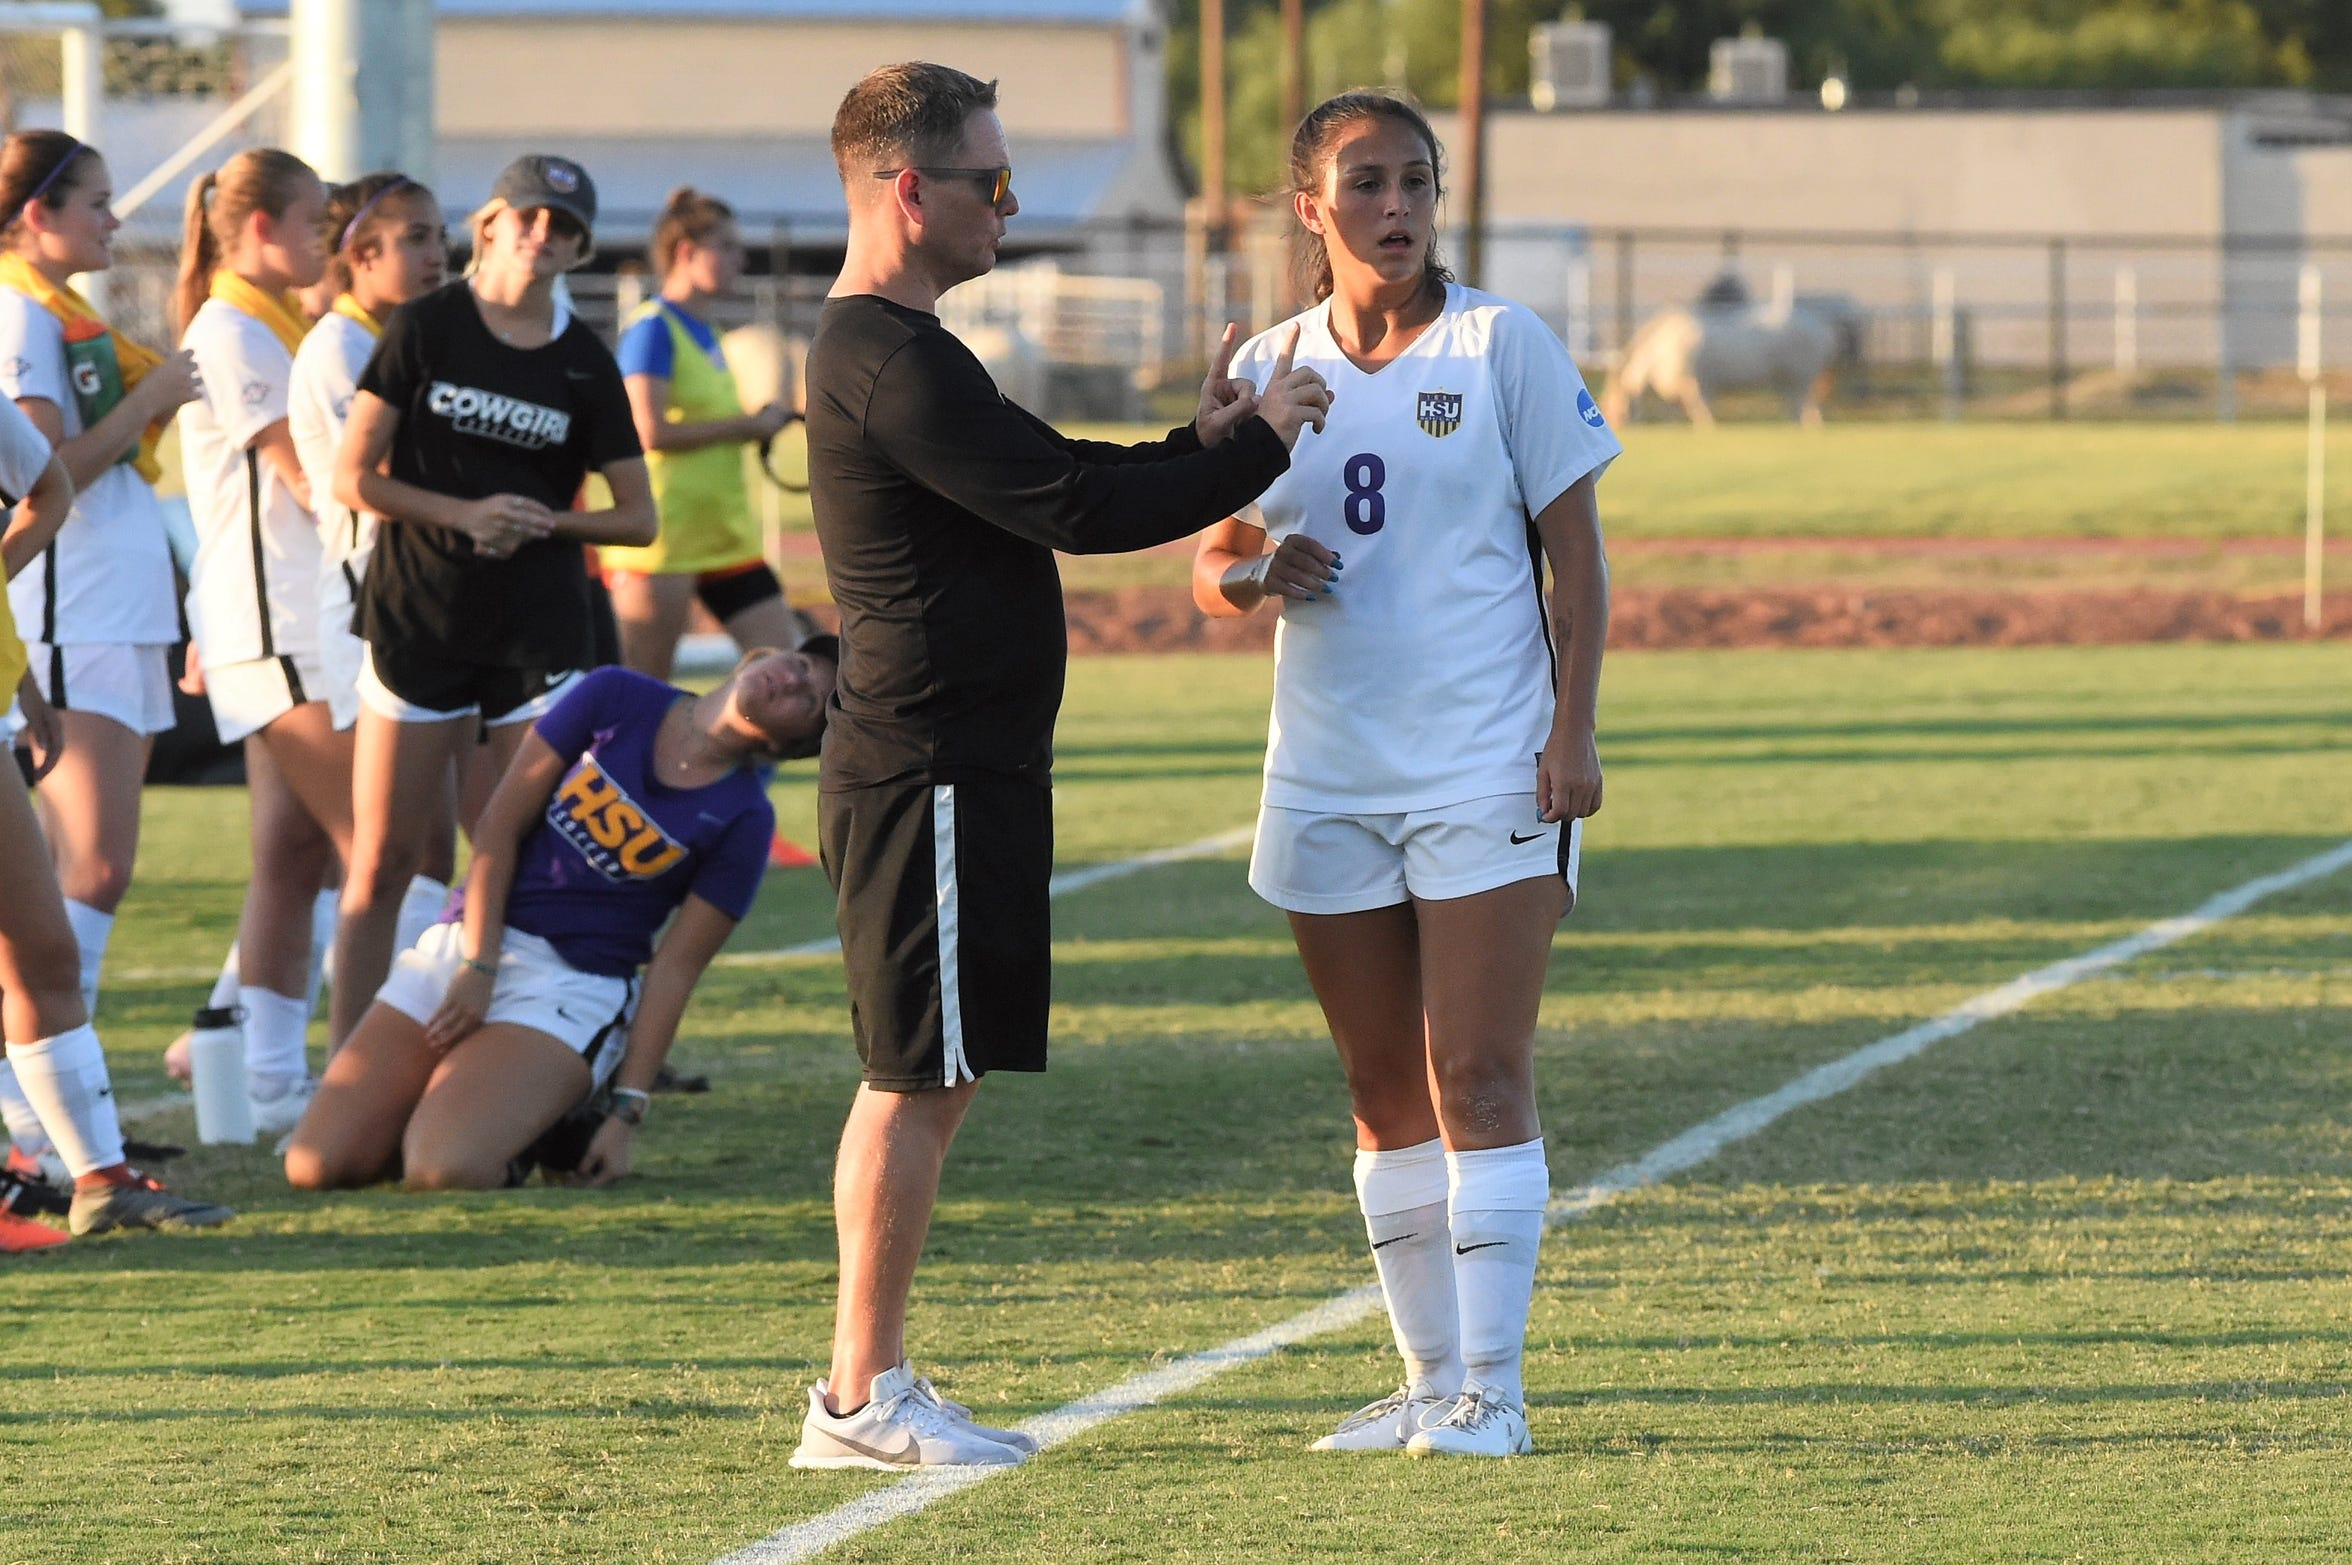 HSU head coach Marcus Wood gives Taylor Bernal (8) instructions during the game against Louisiana College at the HSU Soccer Complex on Thursday.